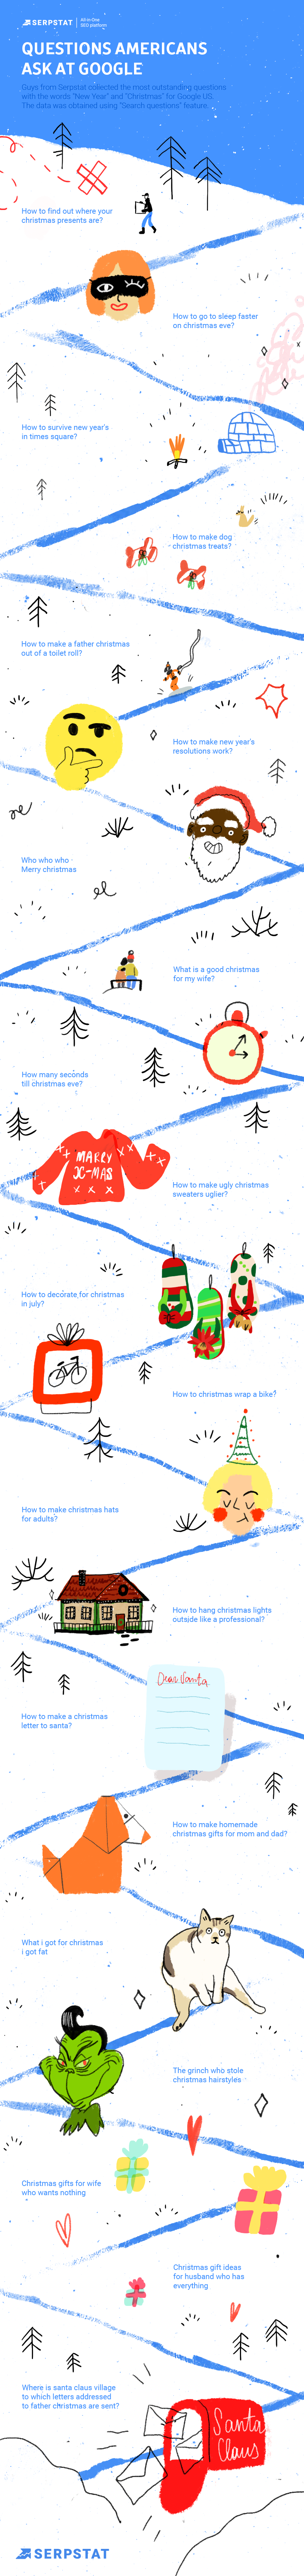 Infographic: Questions Americans Asked Google on Christmas Eve in 2017